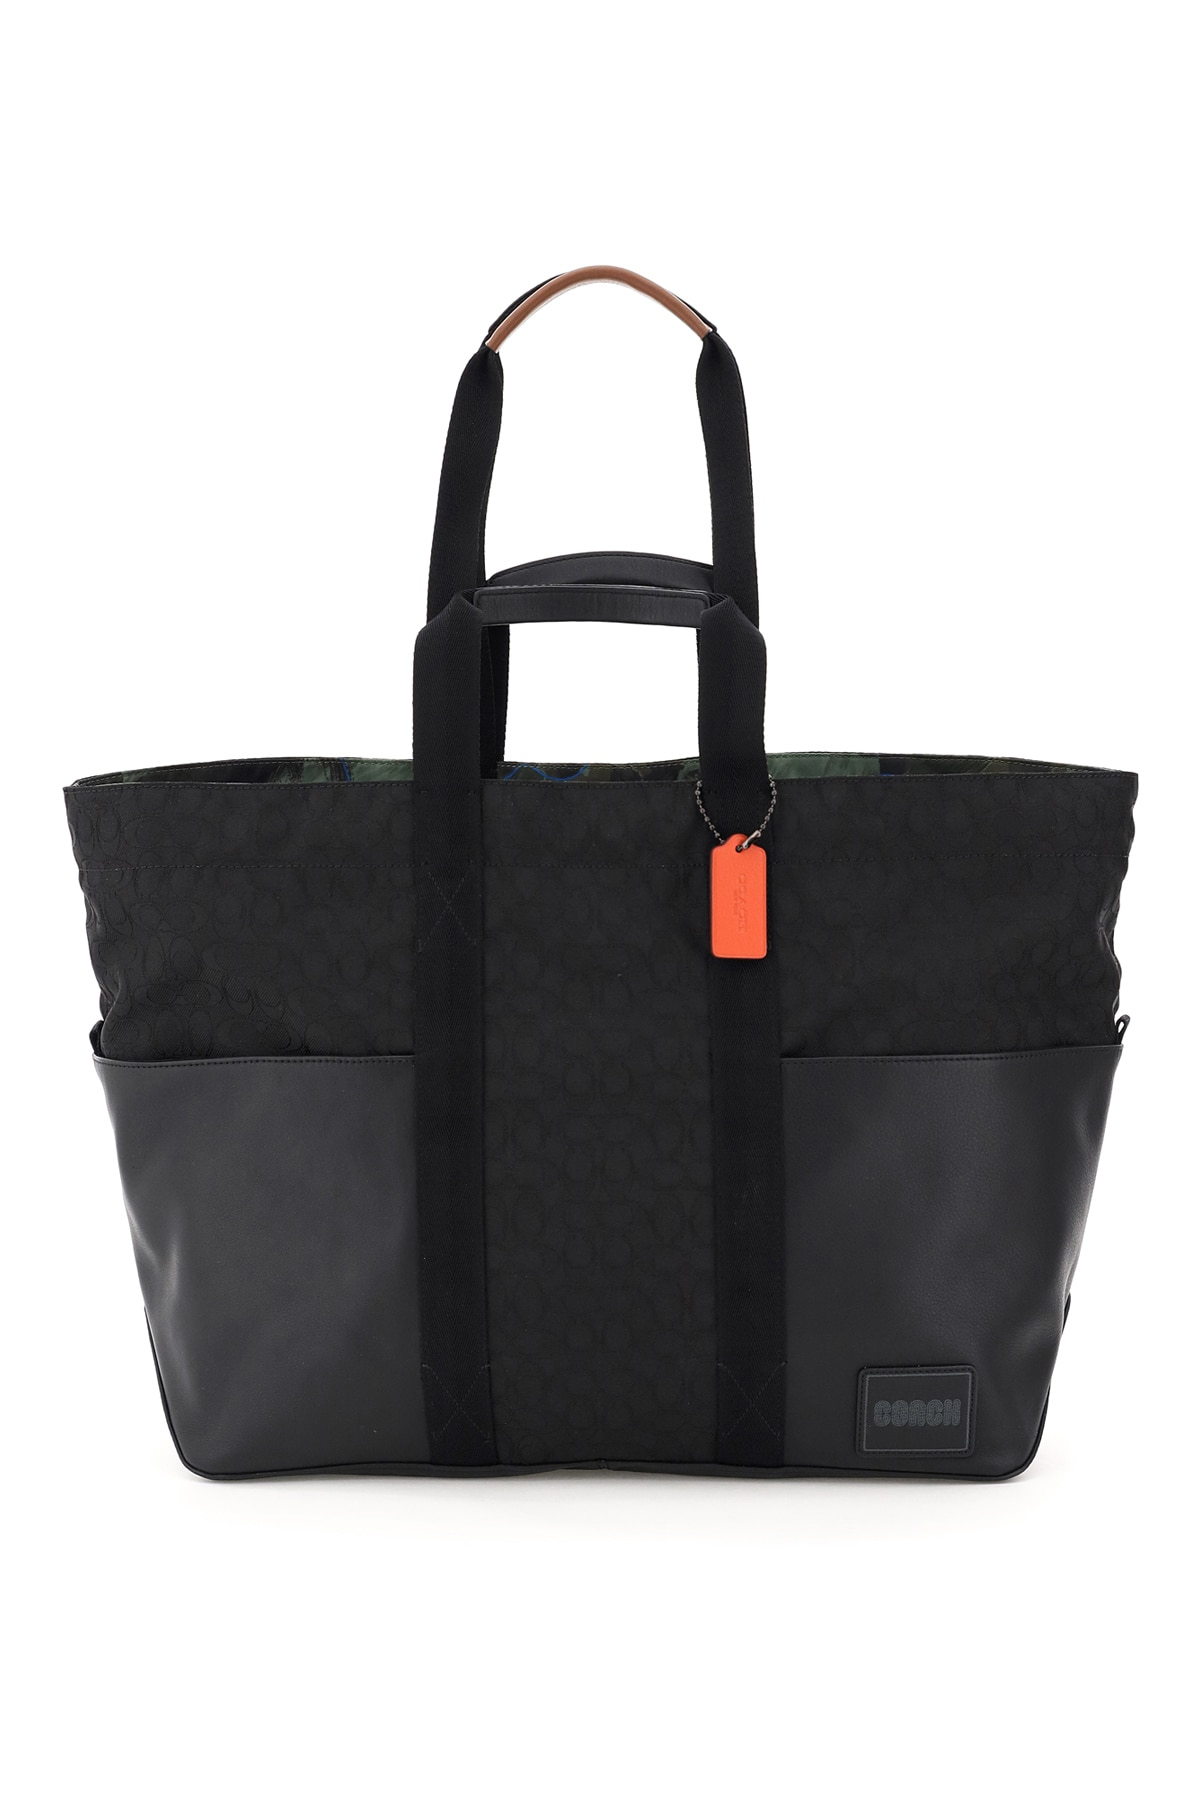 COACH PACER REVERSIBLE SIGNATURE TOTE BAG OS Black Leather, Technical